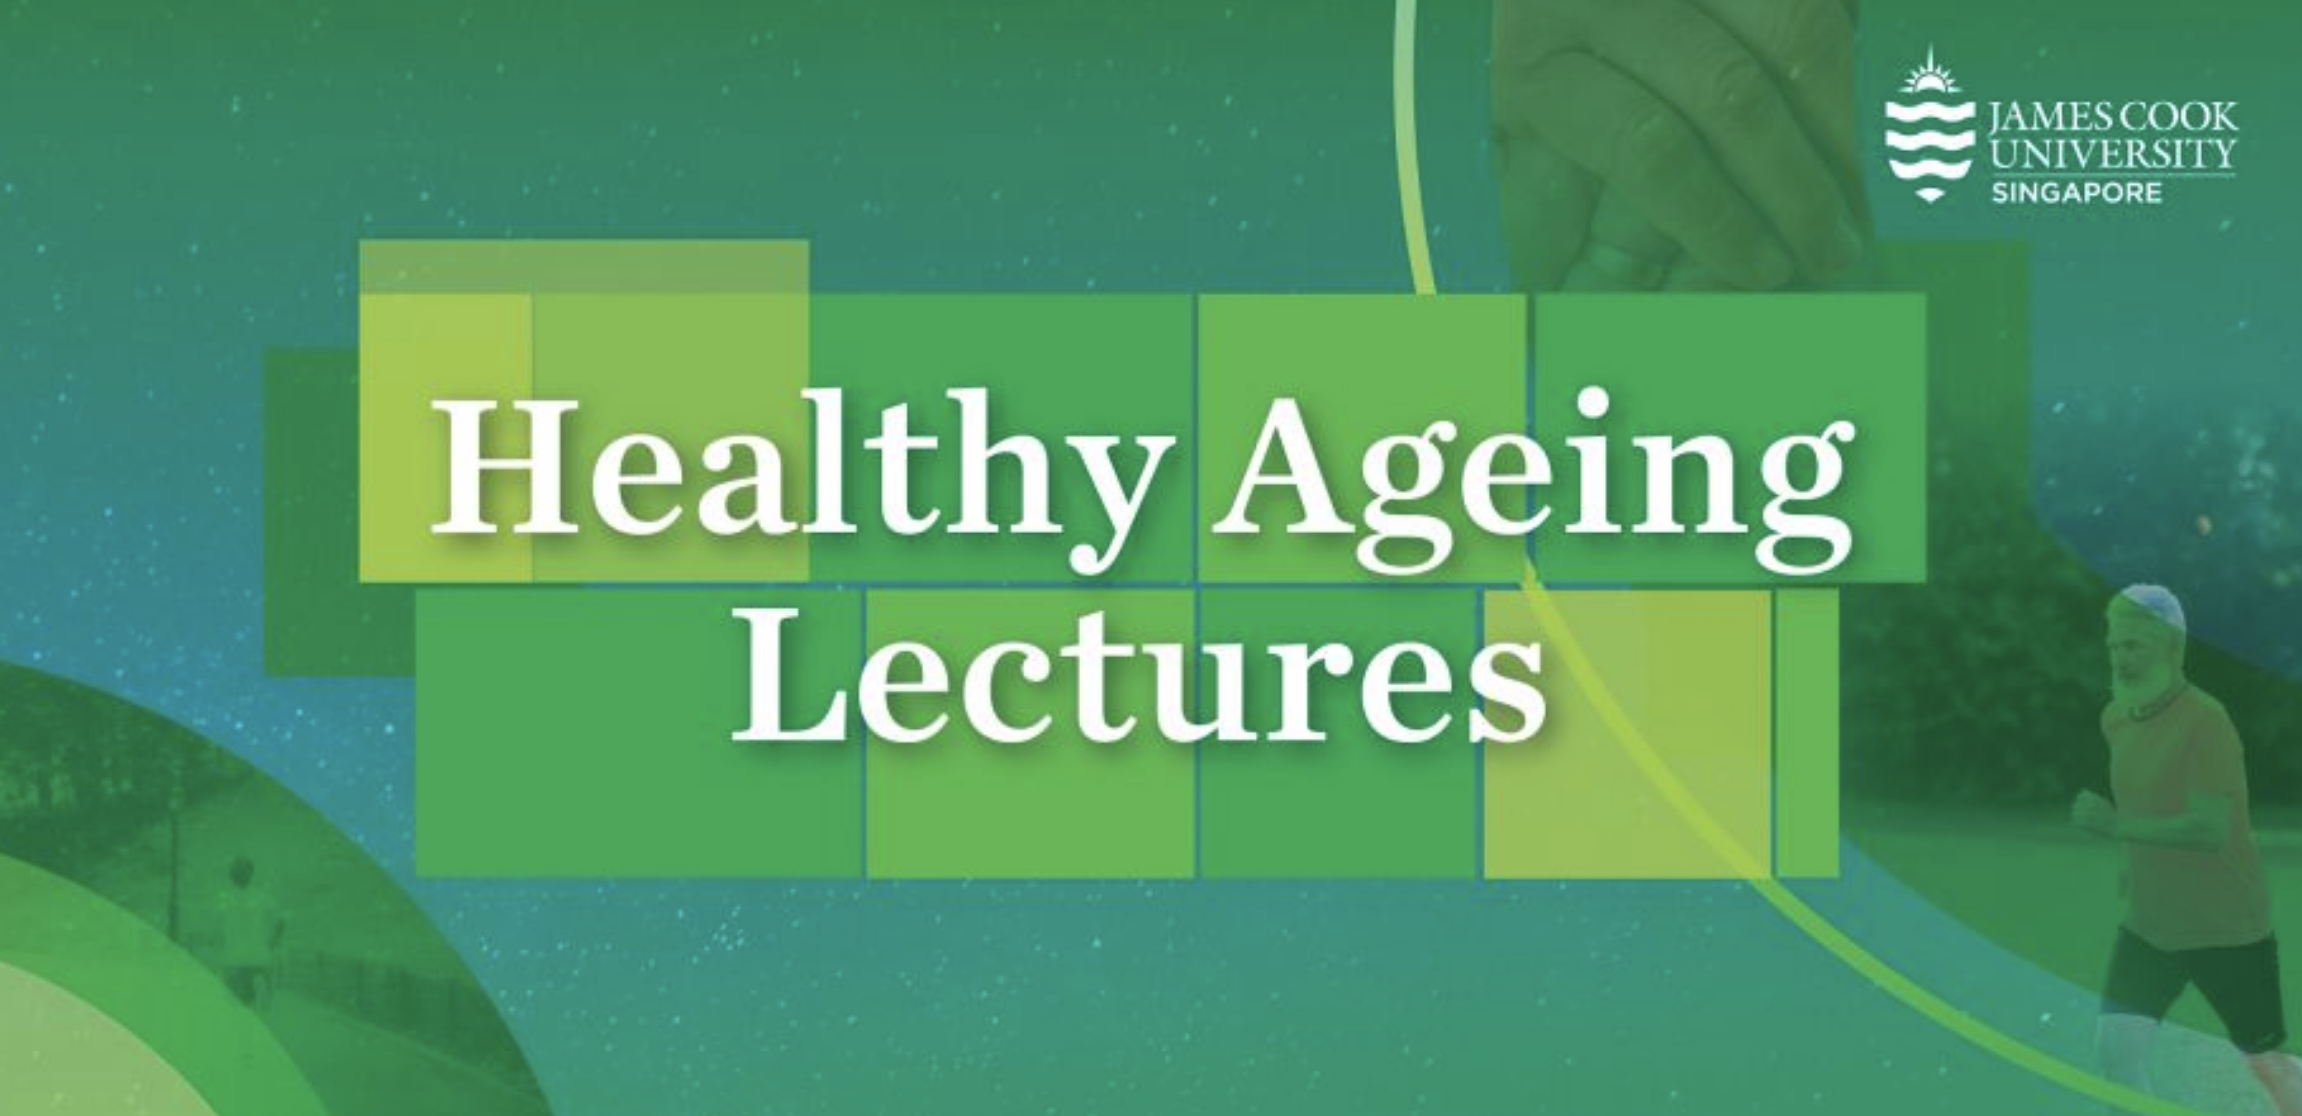 JCU Singapore Healthy Ageing Lectures